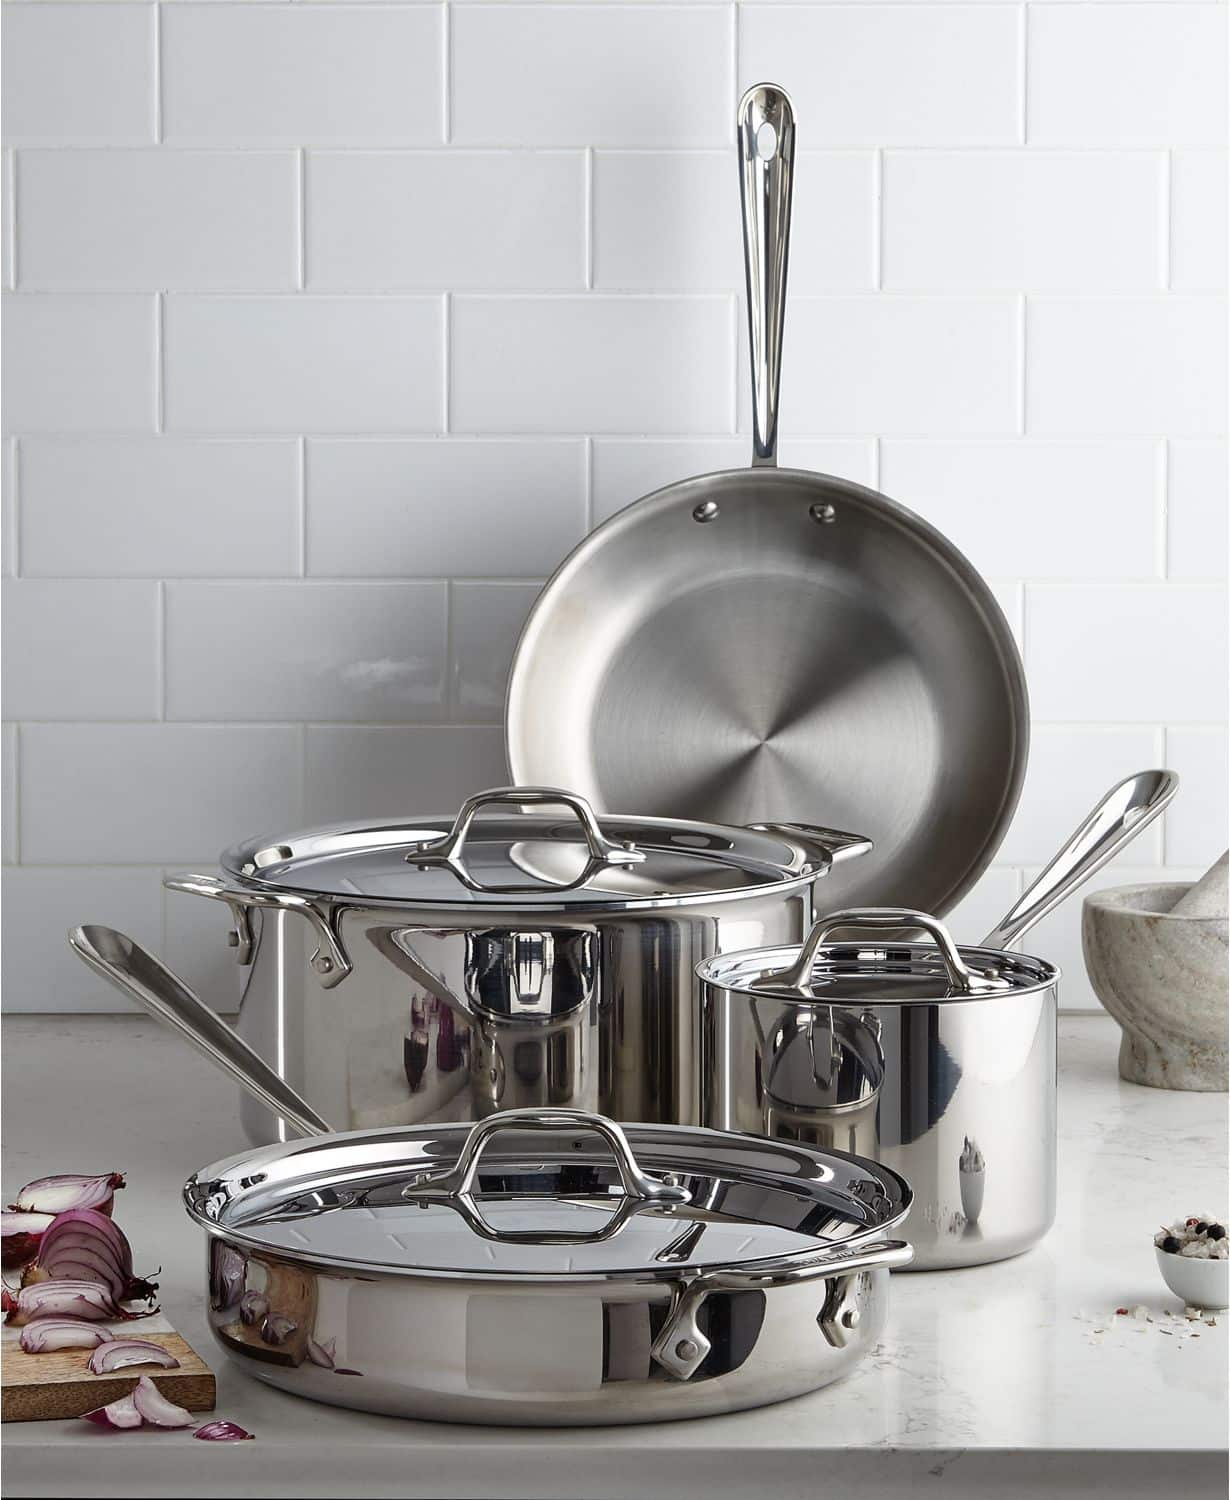 All-Clad Stainless Steel 7-Pc. Cookware Set + $25 Macys eGift Card $300 via Slickdeals Rebate + free shipping